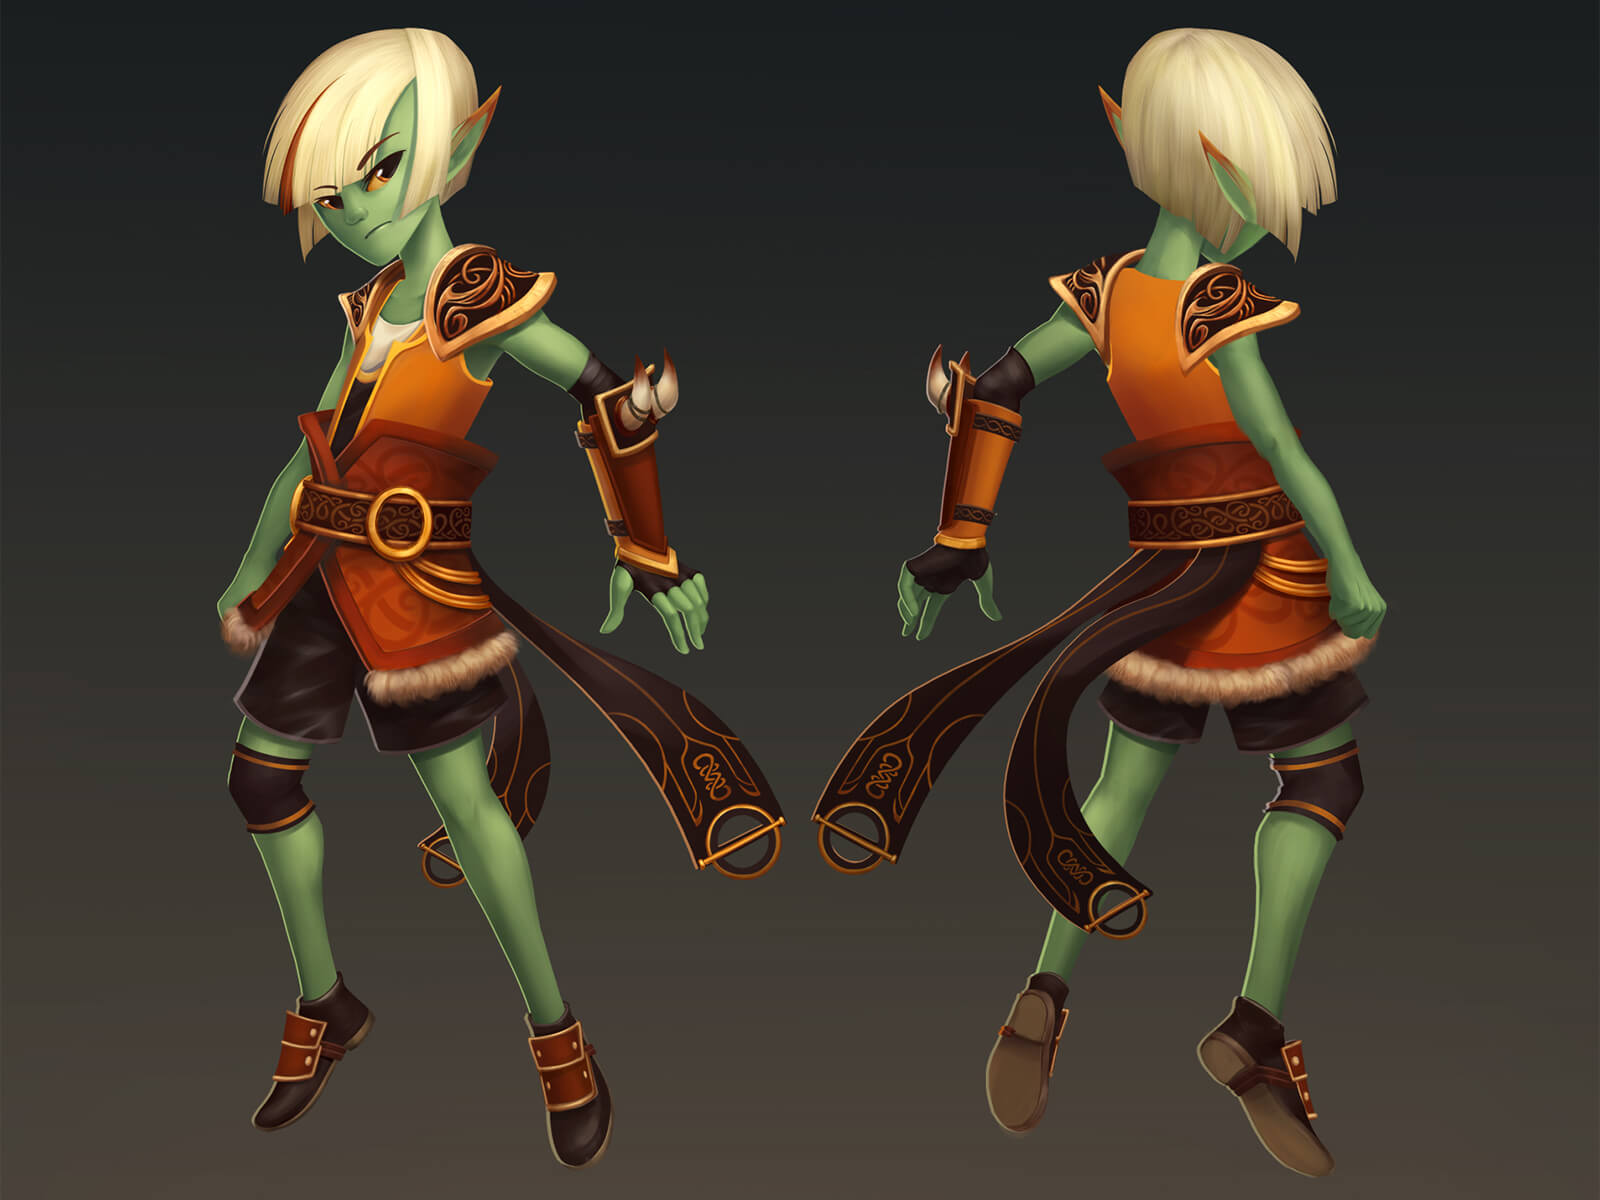 A turnaround sketch of a green elf-like character with blond hair in ornate, light-leather armor.